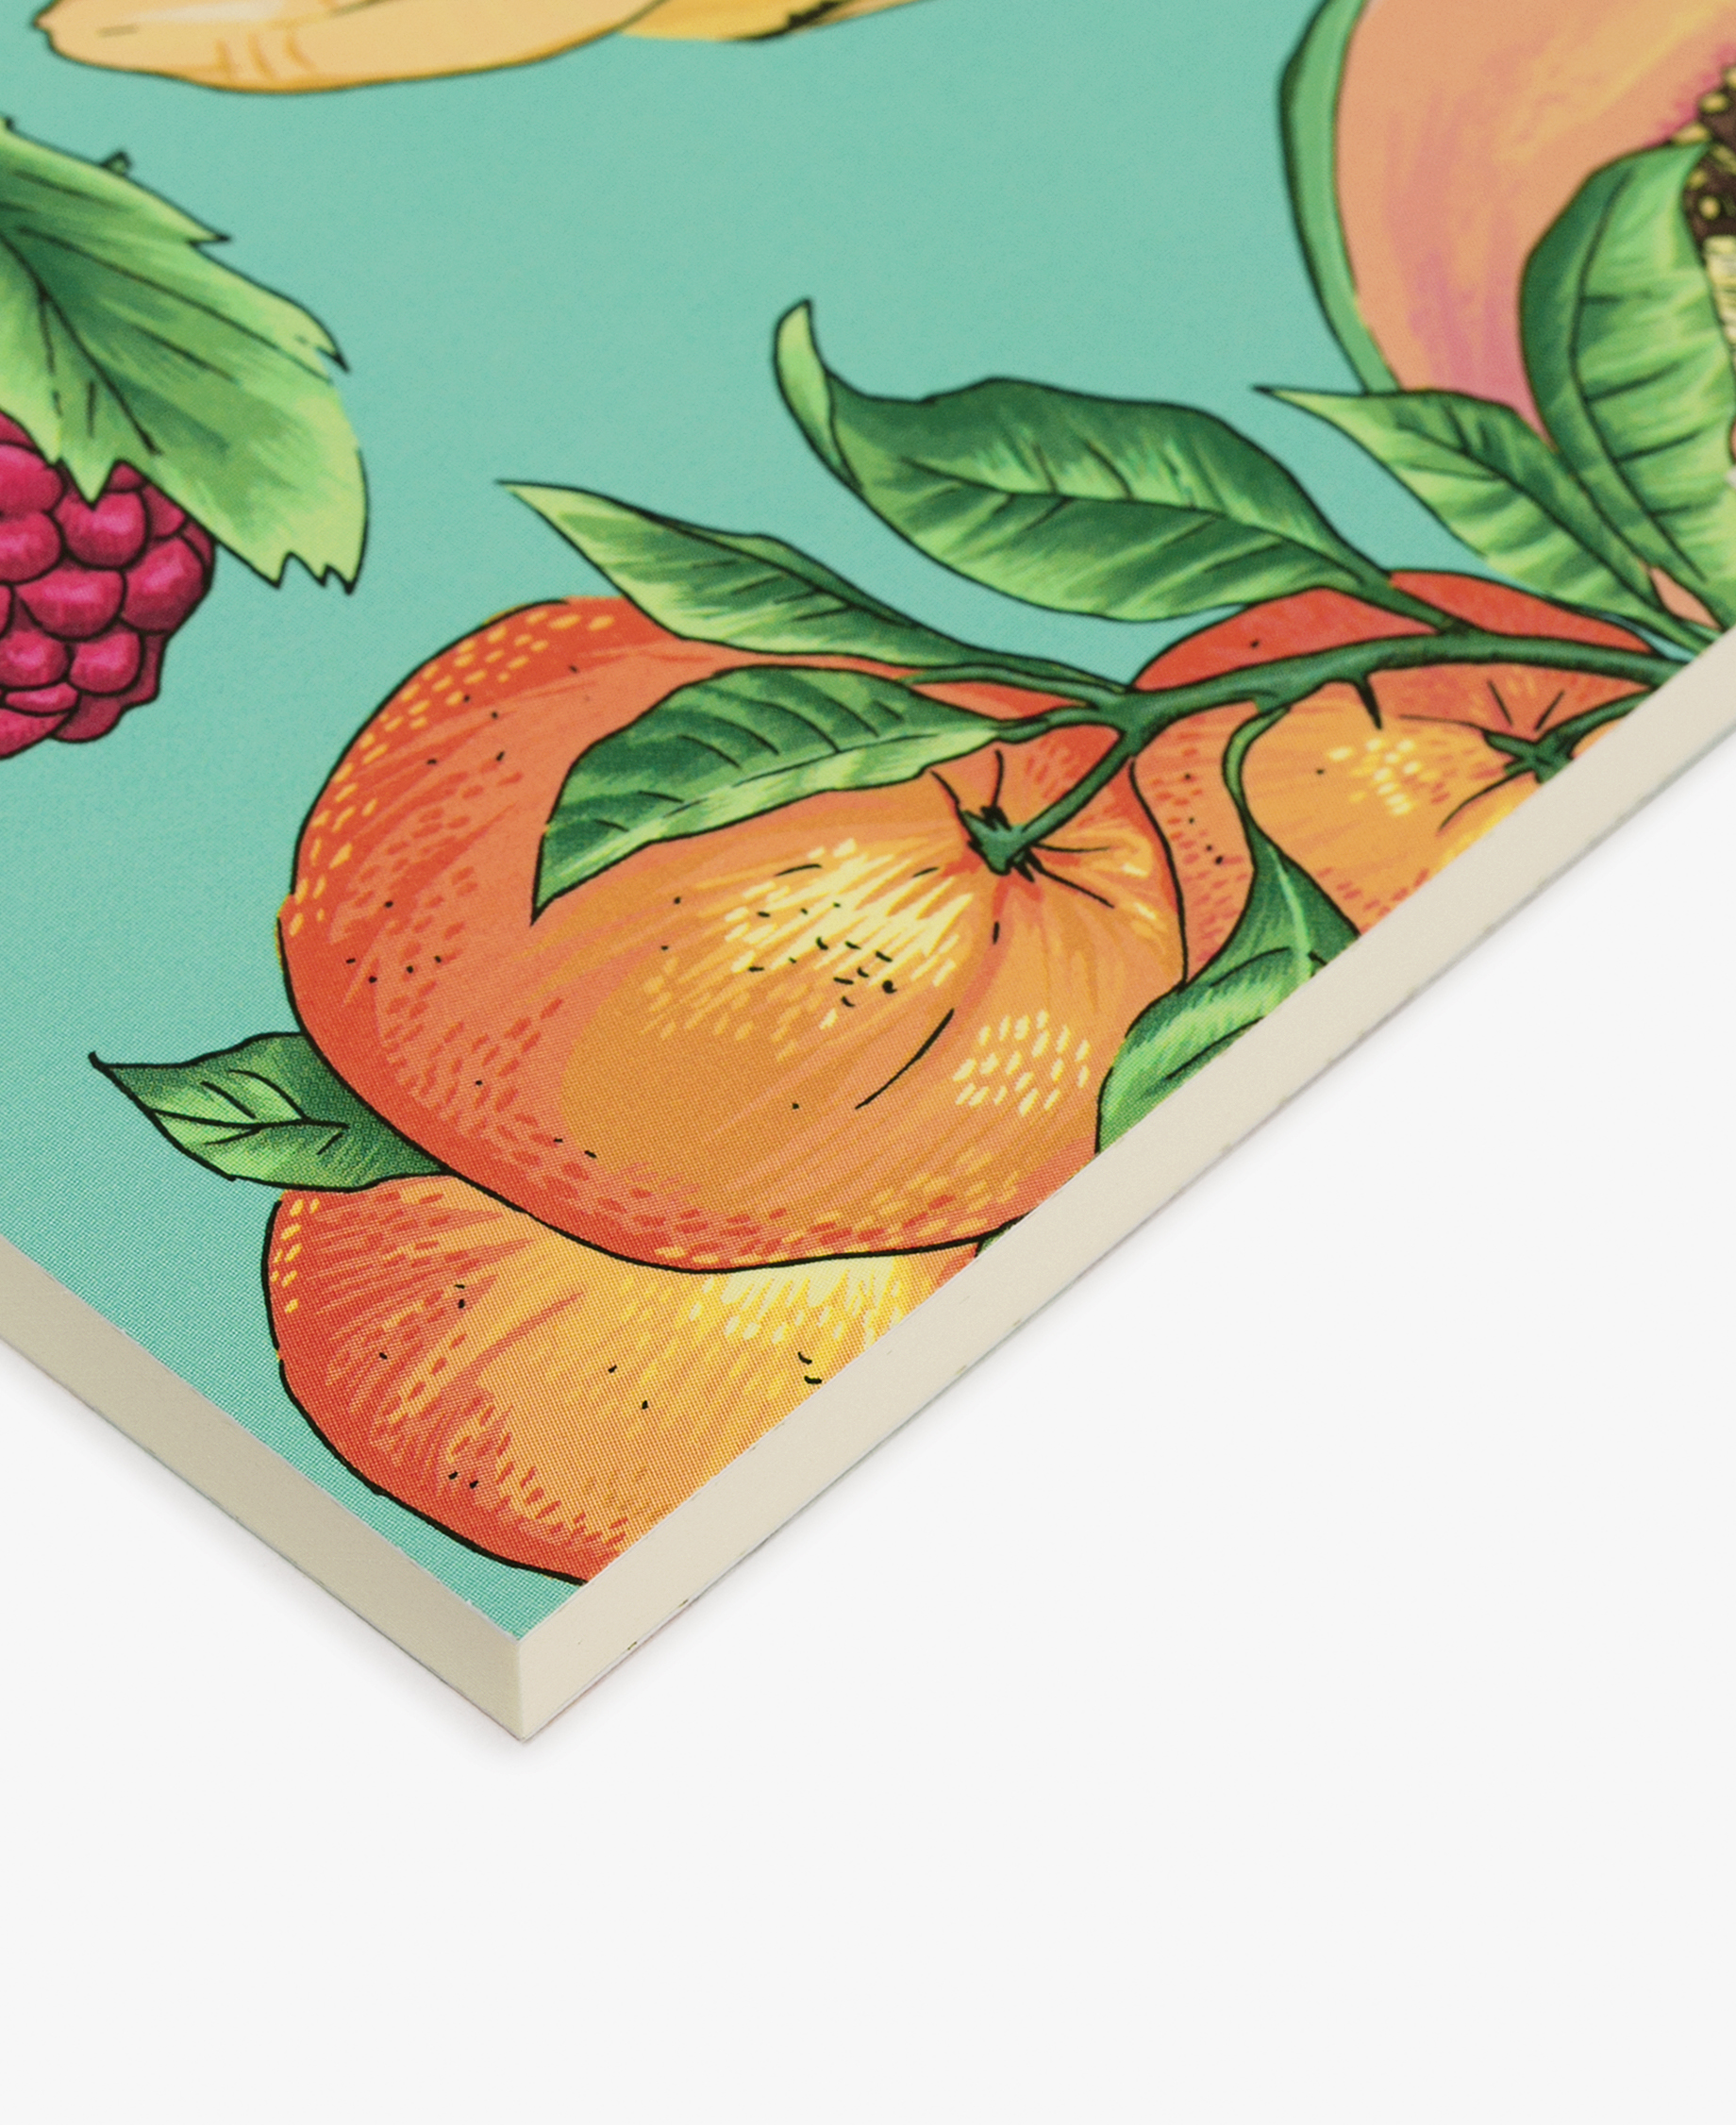 journal notebook with orange fruits